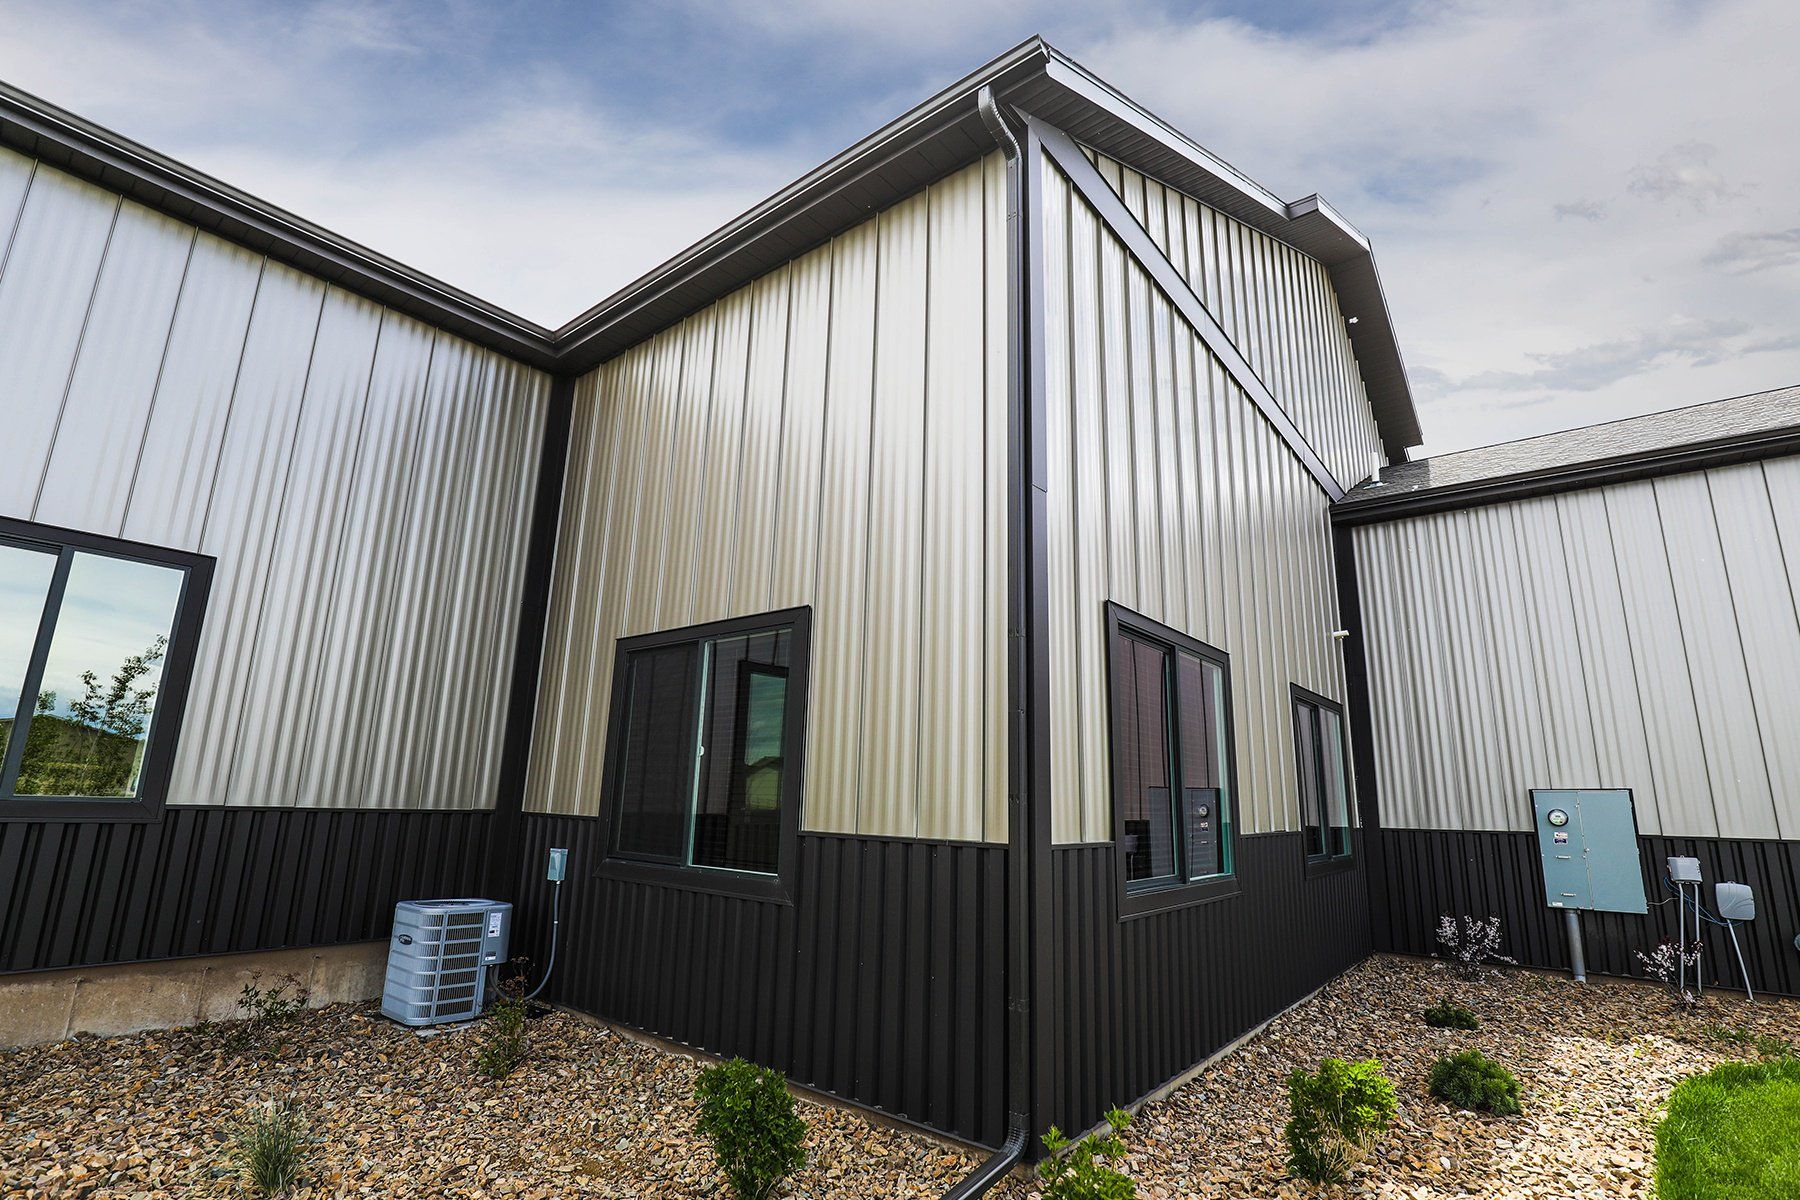 Pin By Michele Hannah On House Exterior Standing Seam Building Front Building Design